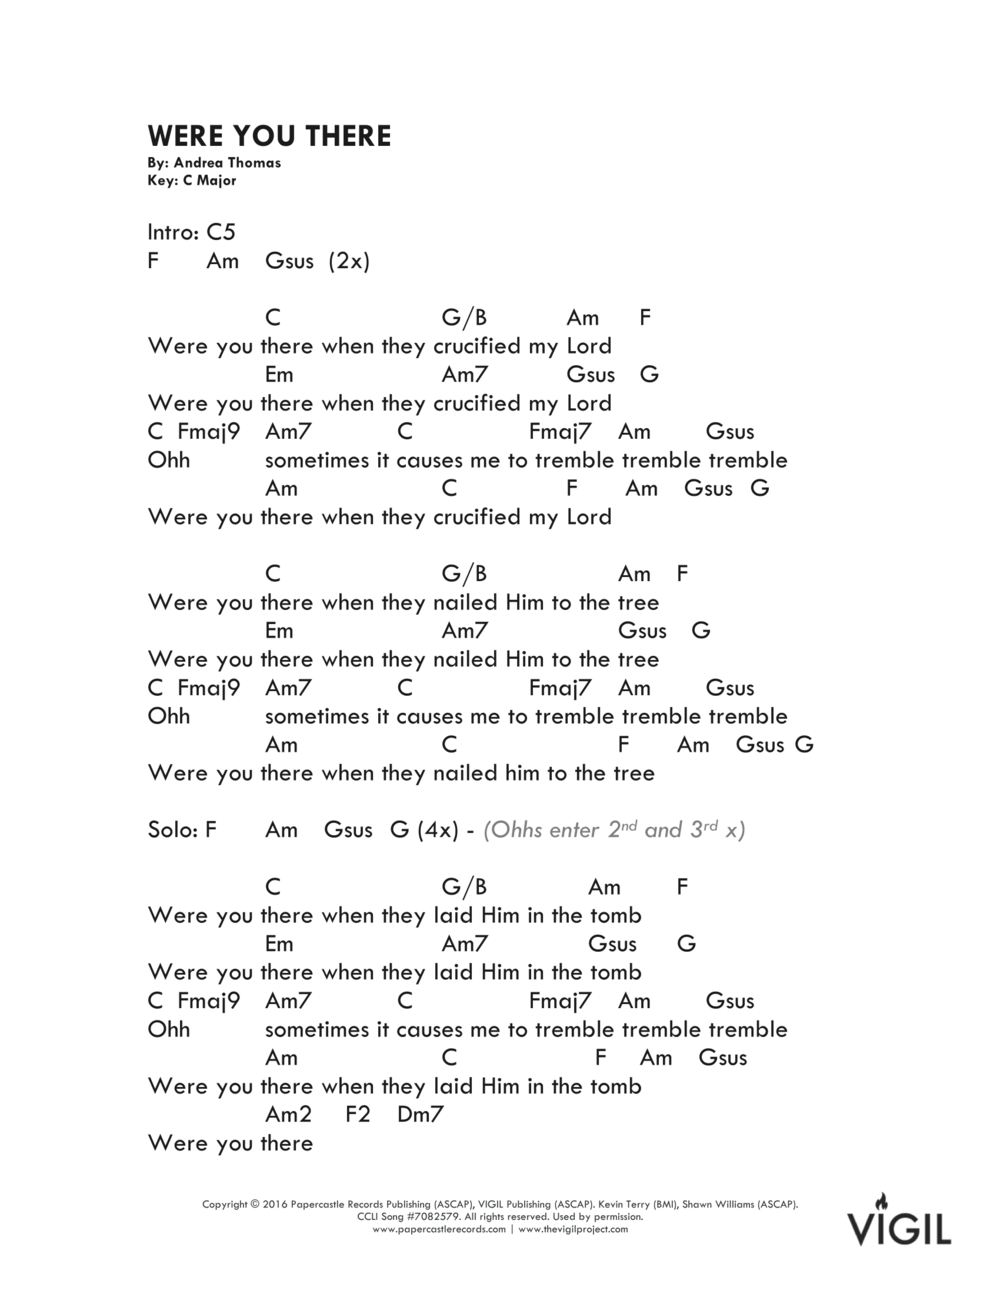 VIGIL S1 - Were You There (C Major)-1.png